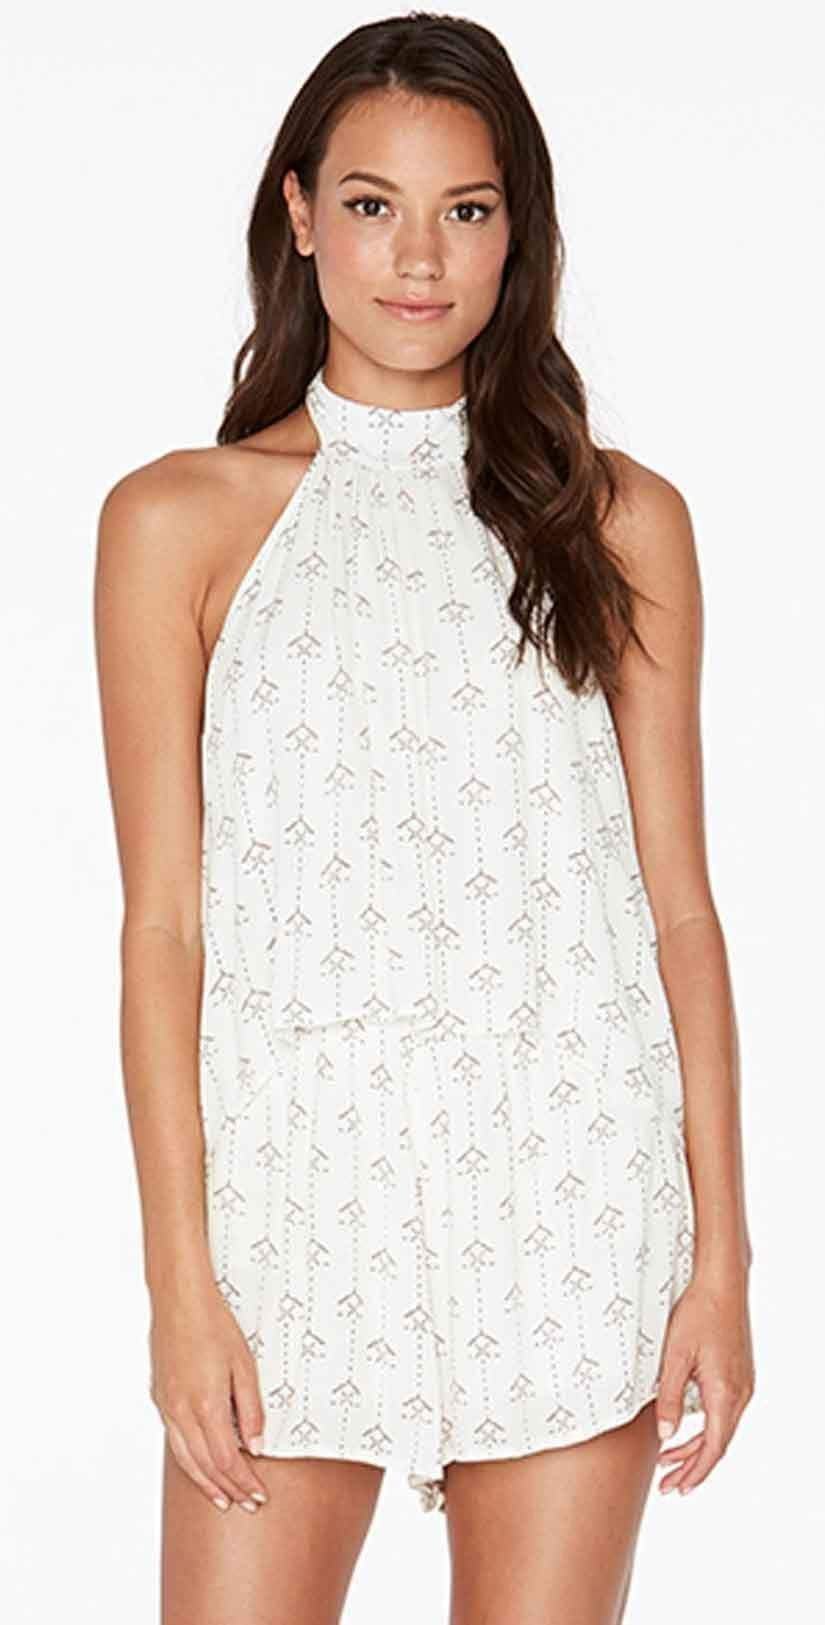 L Space Kelly Native Geo Romper in Ivory KENJU18-IVO: